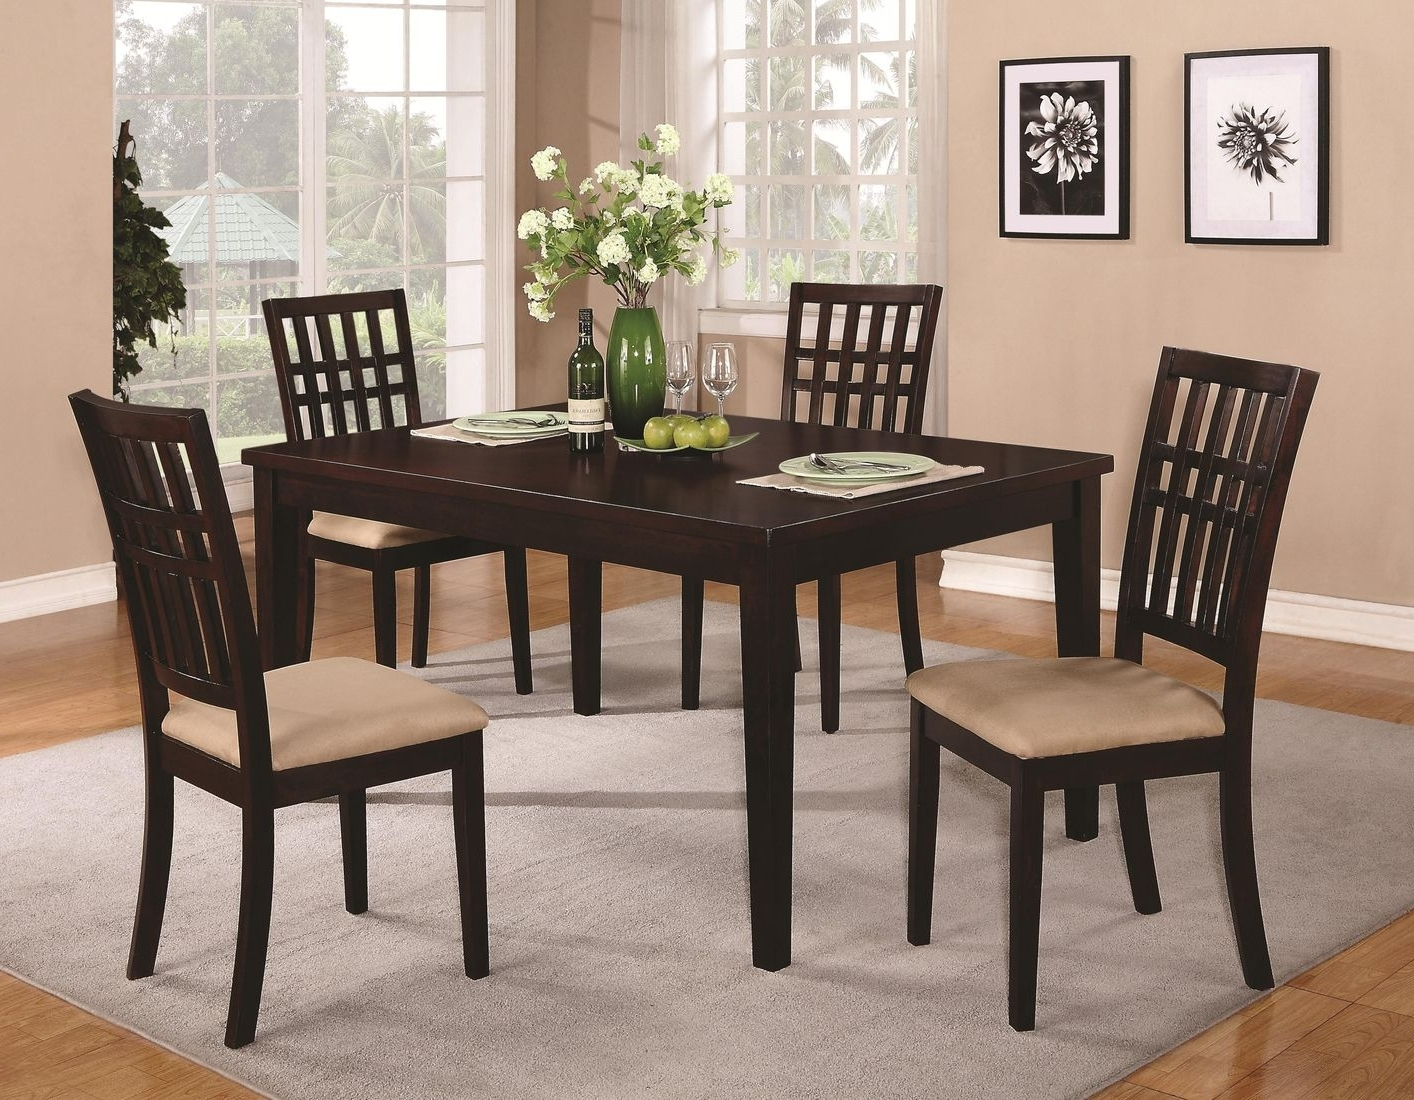 Brandt Dark Cherry Wood Dining Table – Steal A Sofa Furniture For Favorite Dining Sofa Chairs (View 7 of 15)